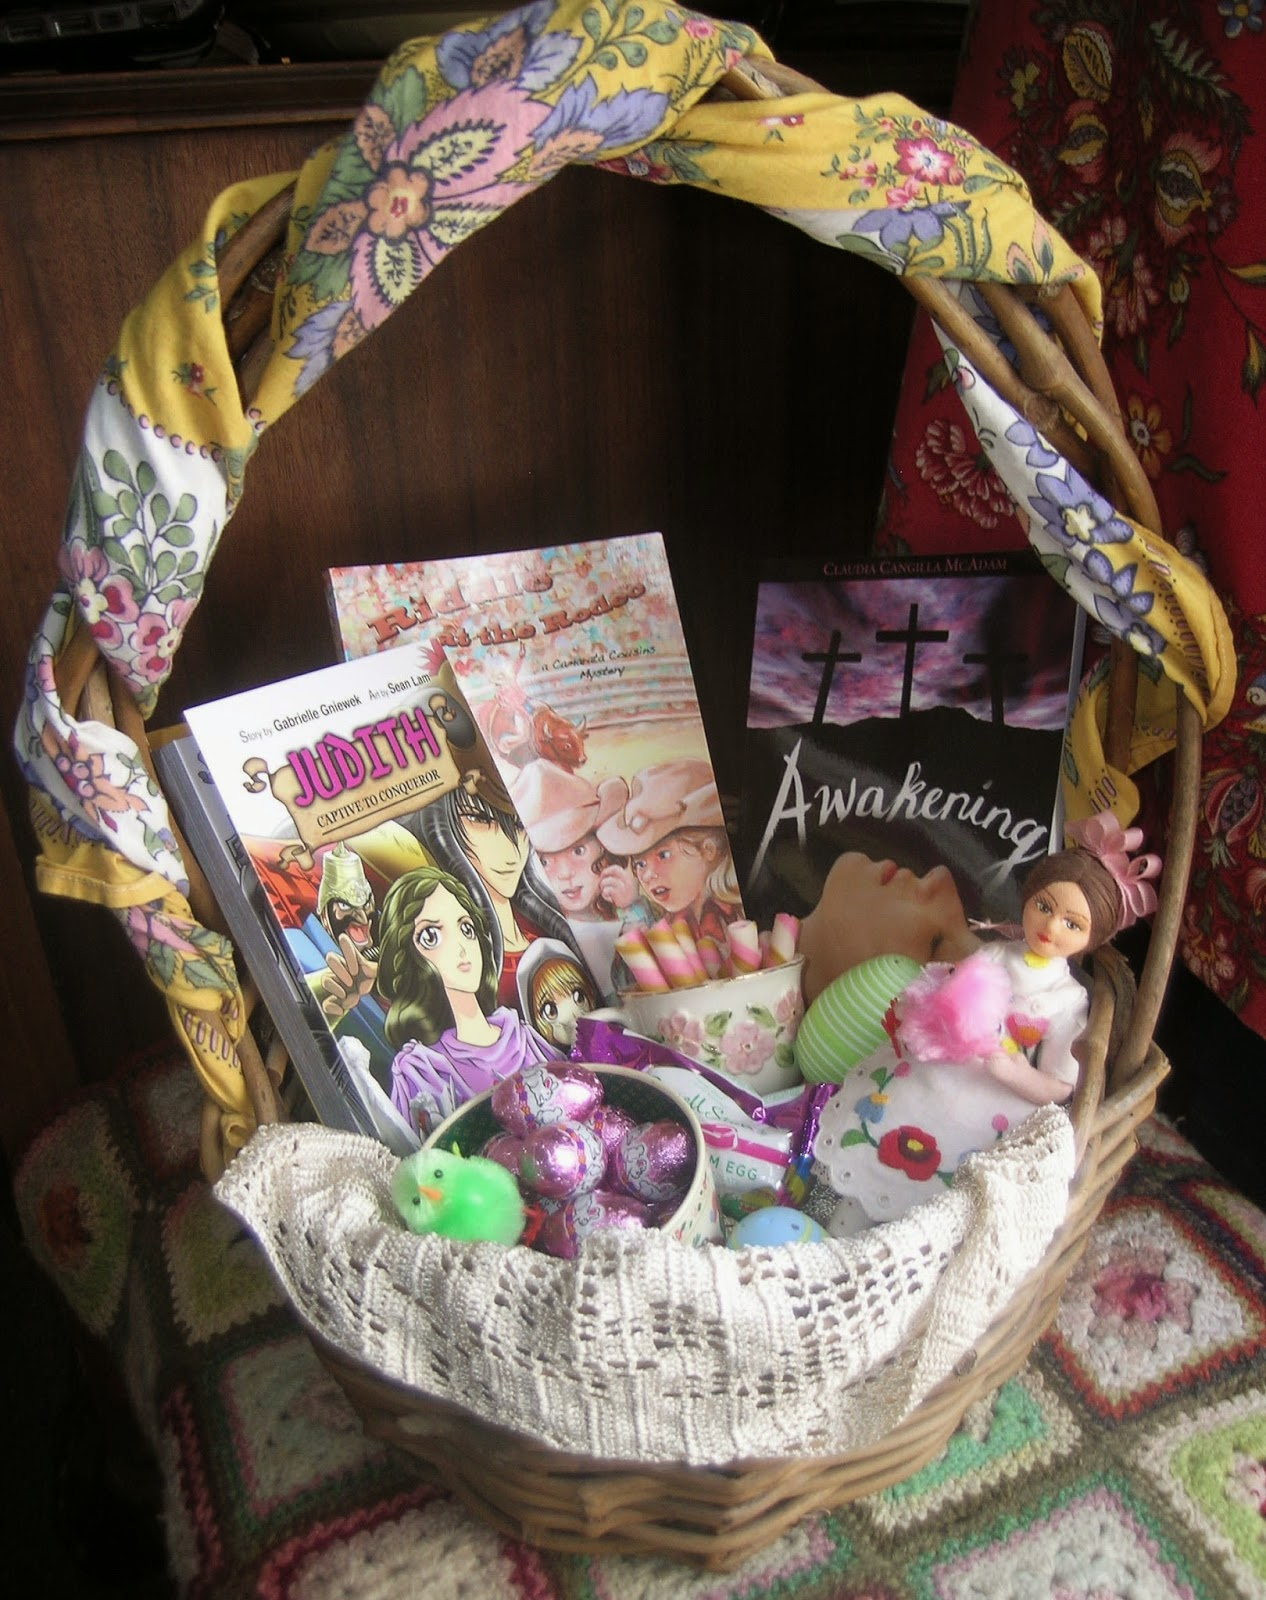 Easter basket tour tween girls chestertonpress tween girls instead of easter ribbons twine a new spring kerchief around the baskets handle line it with a lace scarf and organize treats with fun and negle Images